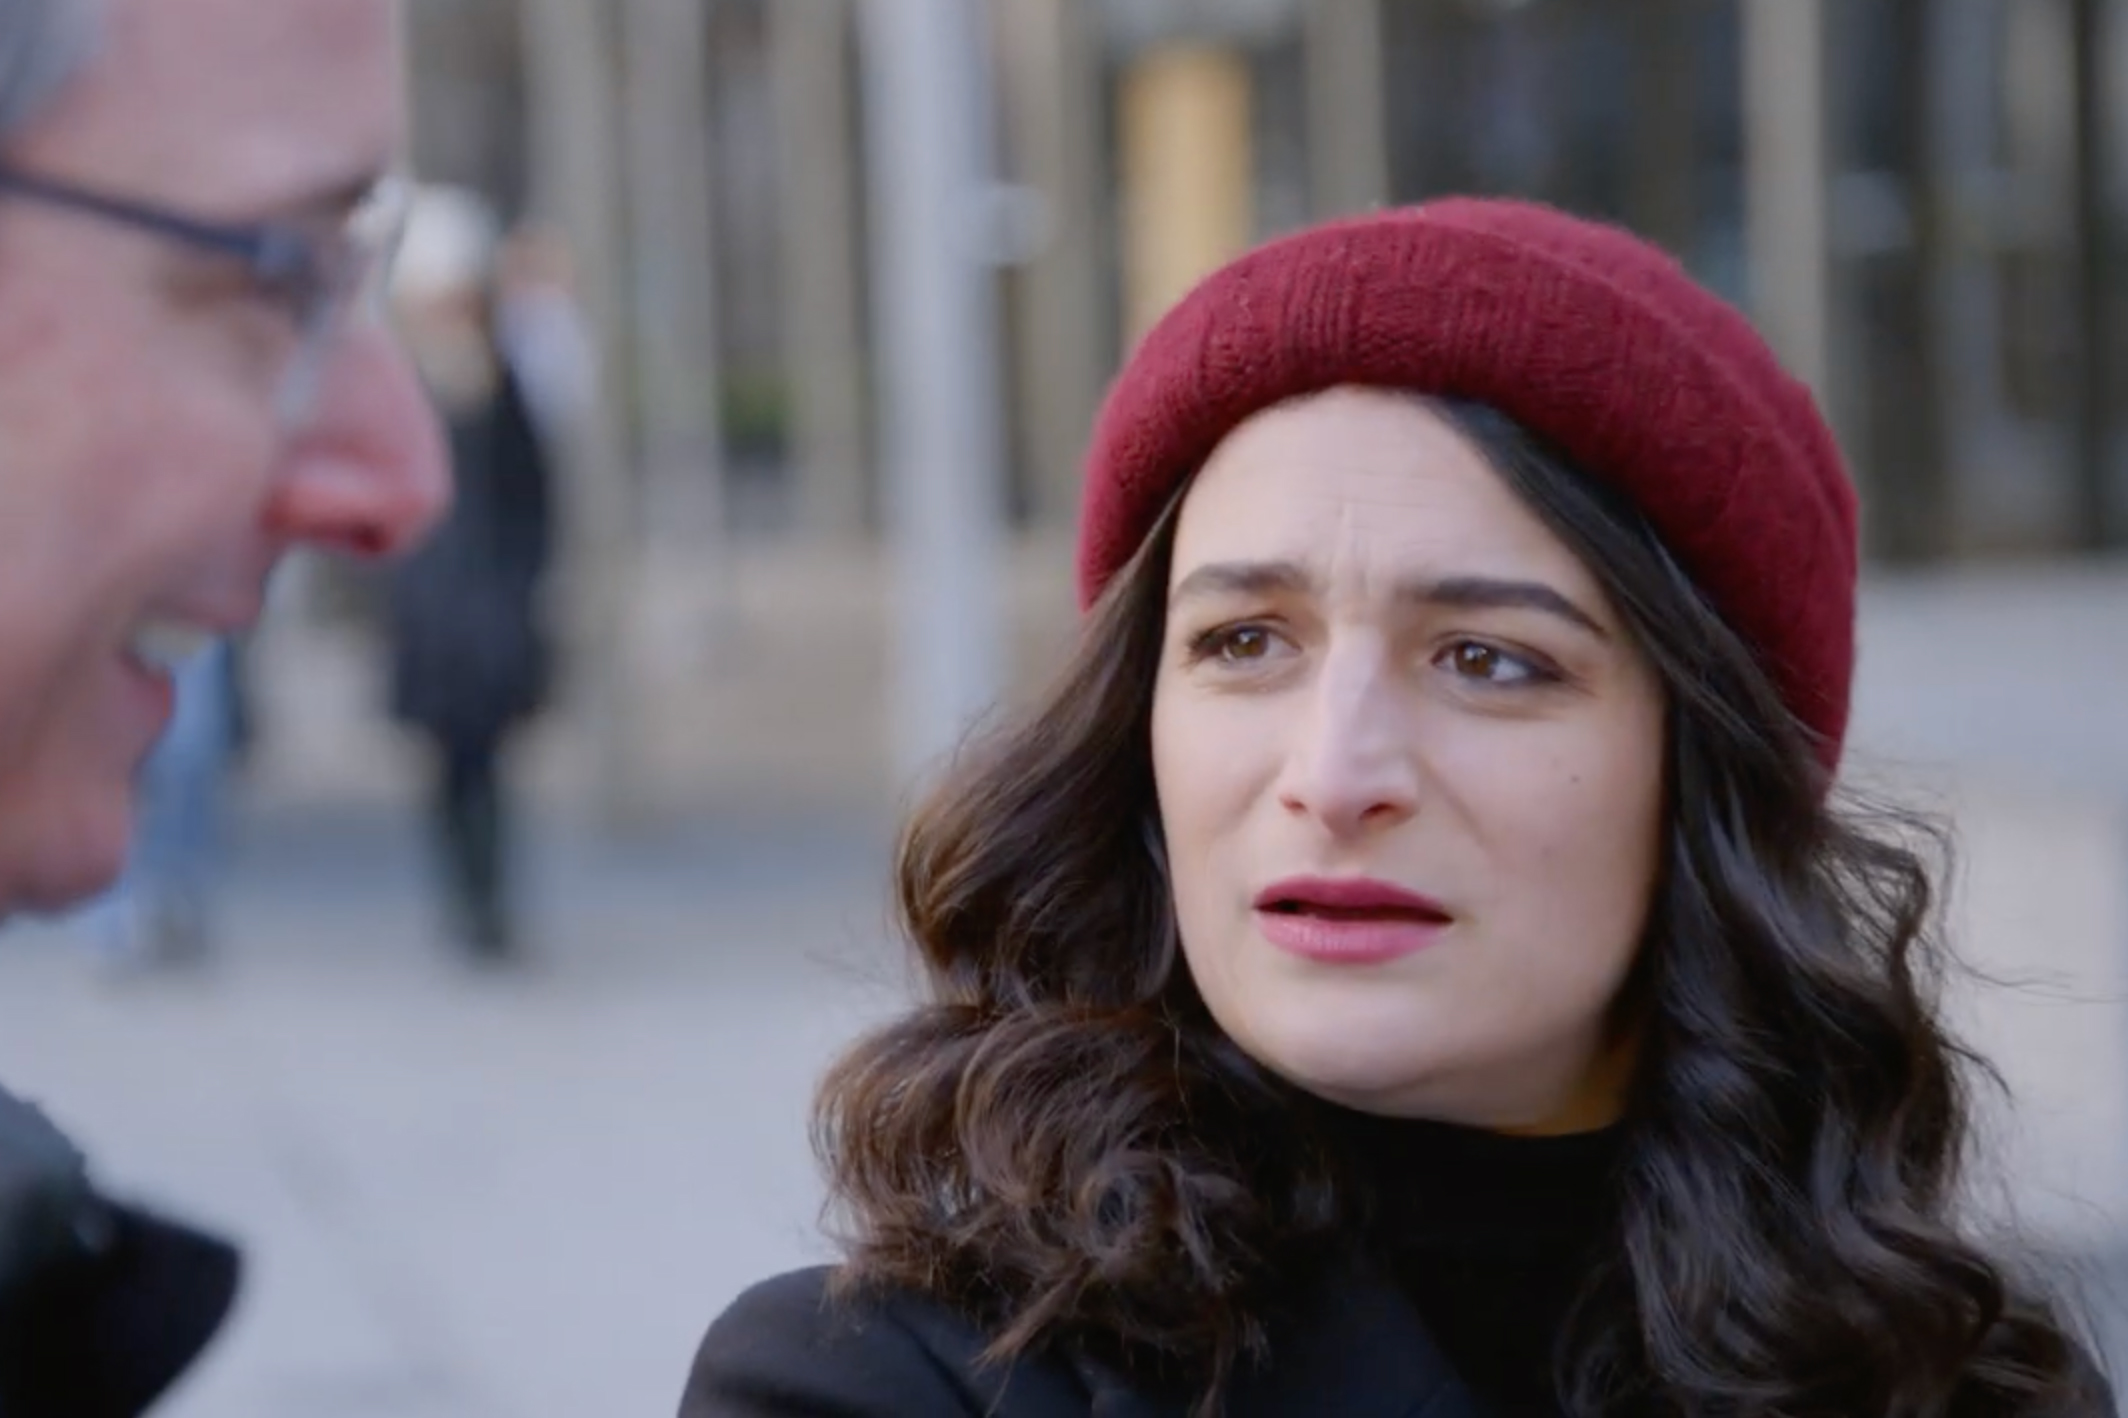 Verizon releases video 24 hours after T-Mobile drops its 5G-focused Super Bowl commercial, stating its 4G network is more than twice as fast than the so-called 'un-carrier's.'